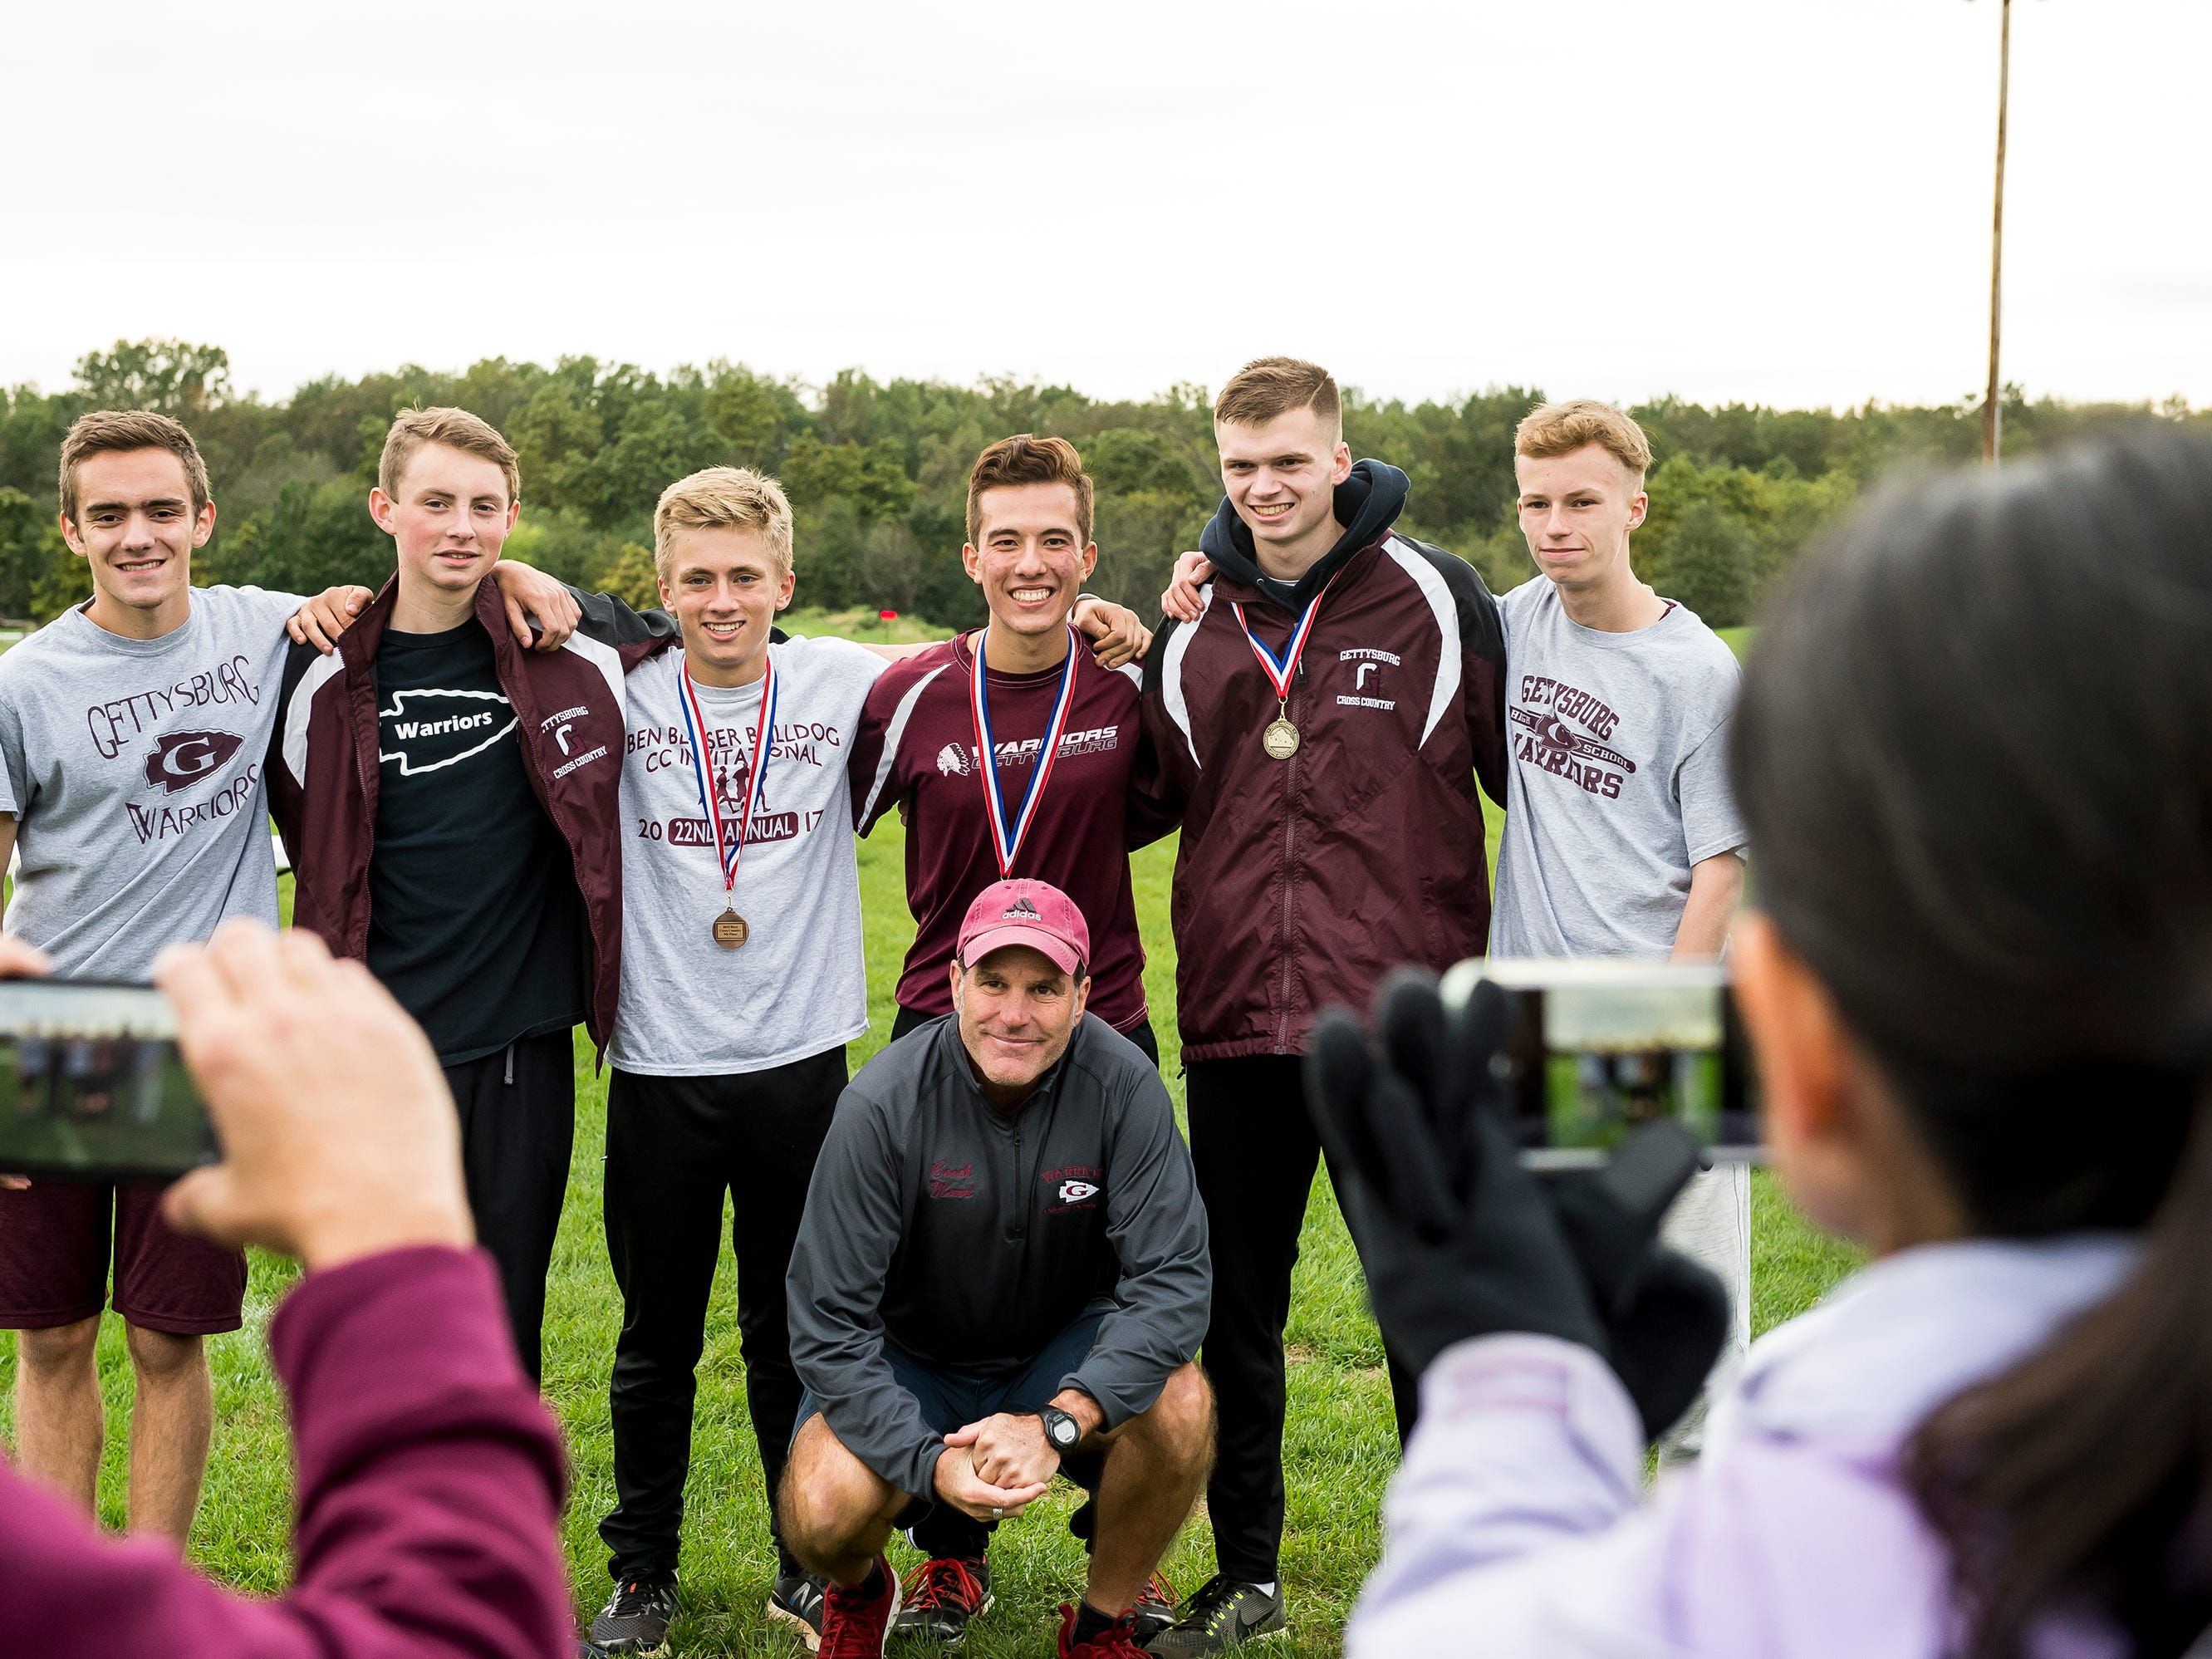 Gettysburg boys' cross country runners pose for photos with coach Brian Mount following the YAIAA cross country championships at Gettysburg Area High School on Tuesday, October 16, 2018. The Warriors finished second in the team rankings.